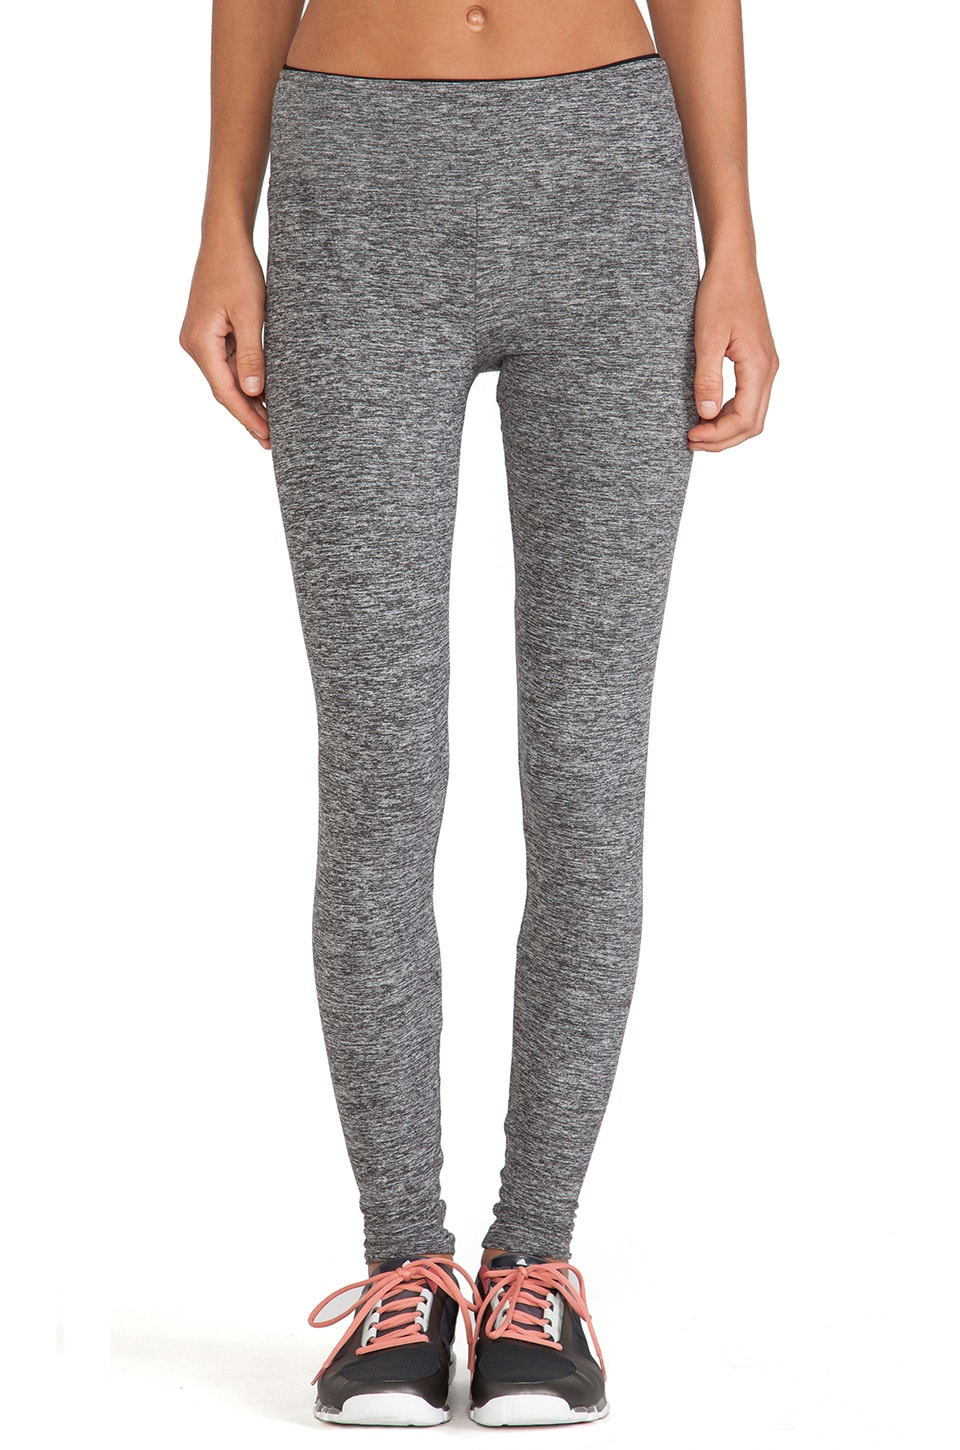 KORAL Mystic Legging in Heather Grey